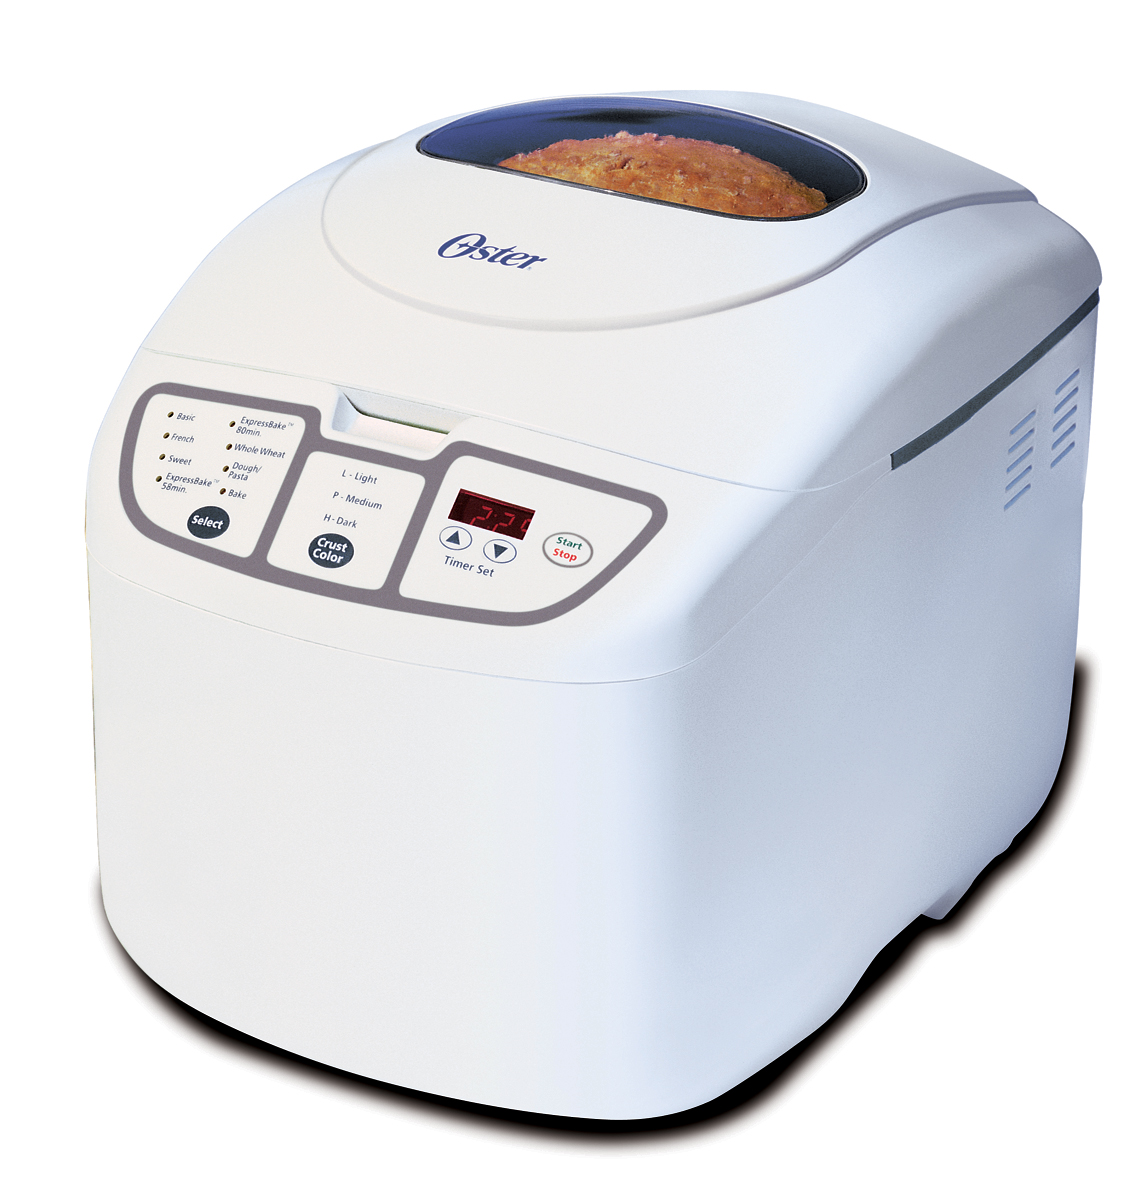 Oster 2 Pound Bread Maker